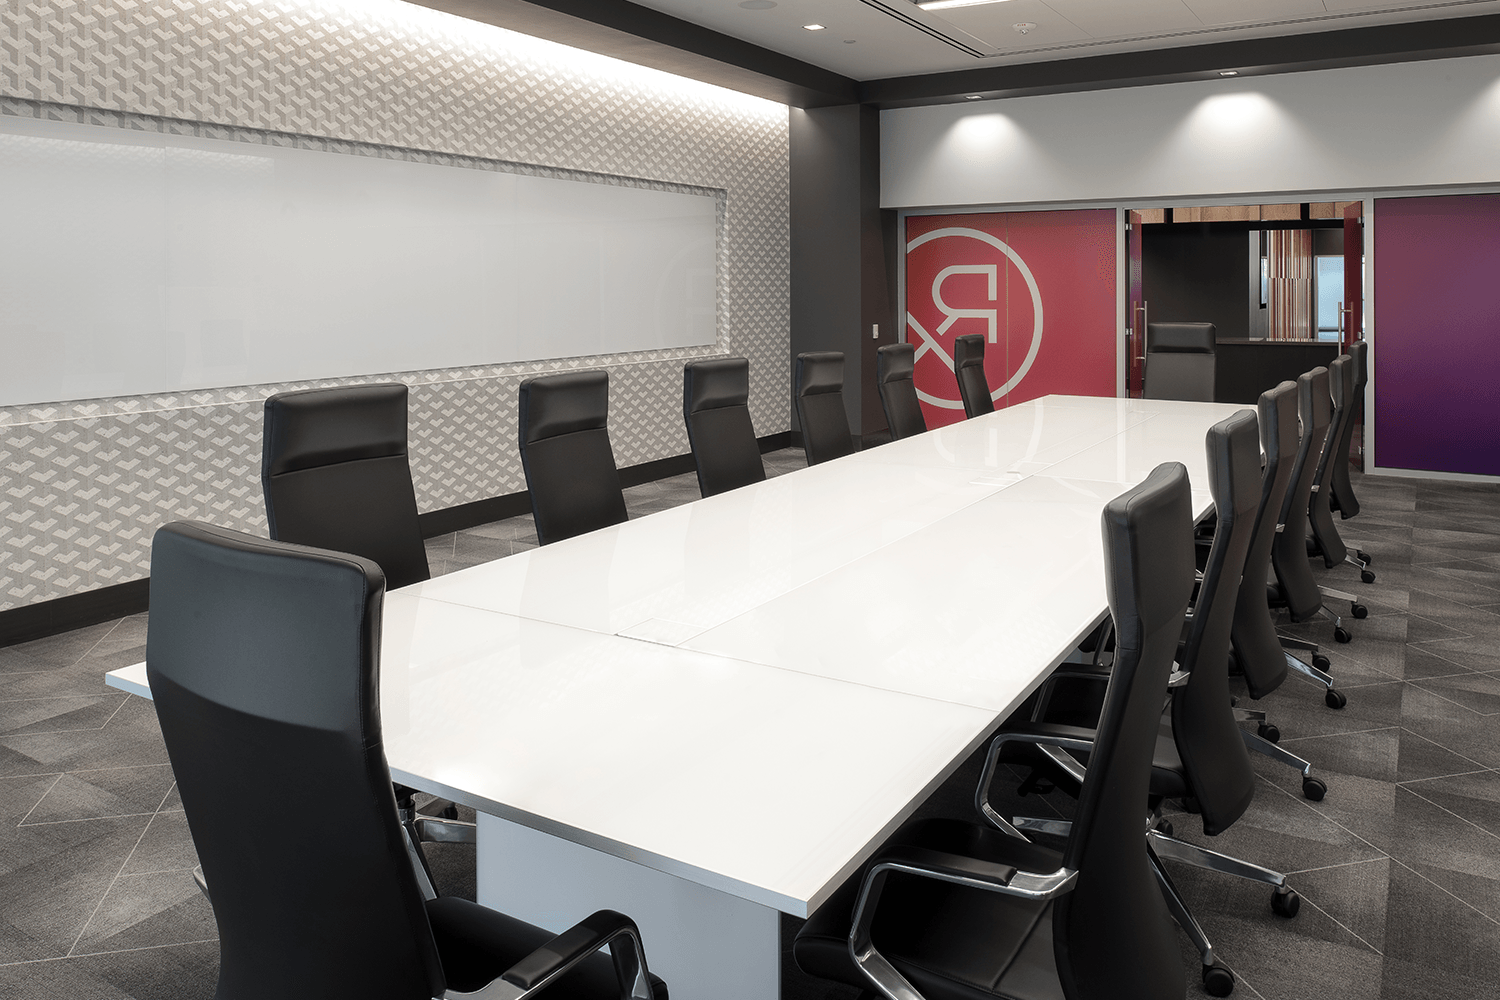 conference room with modern aesthetic and large table with desk chairs